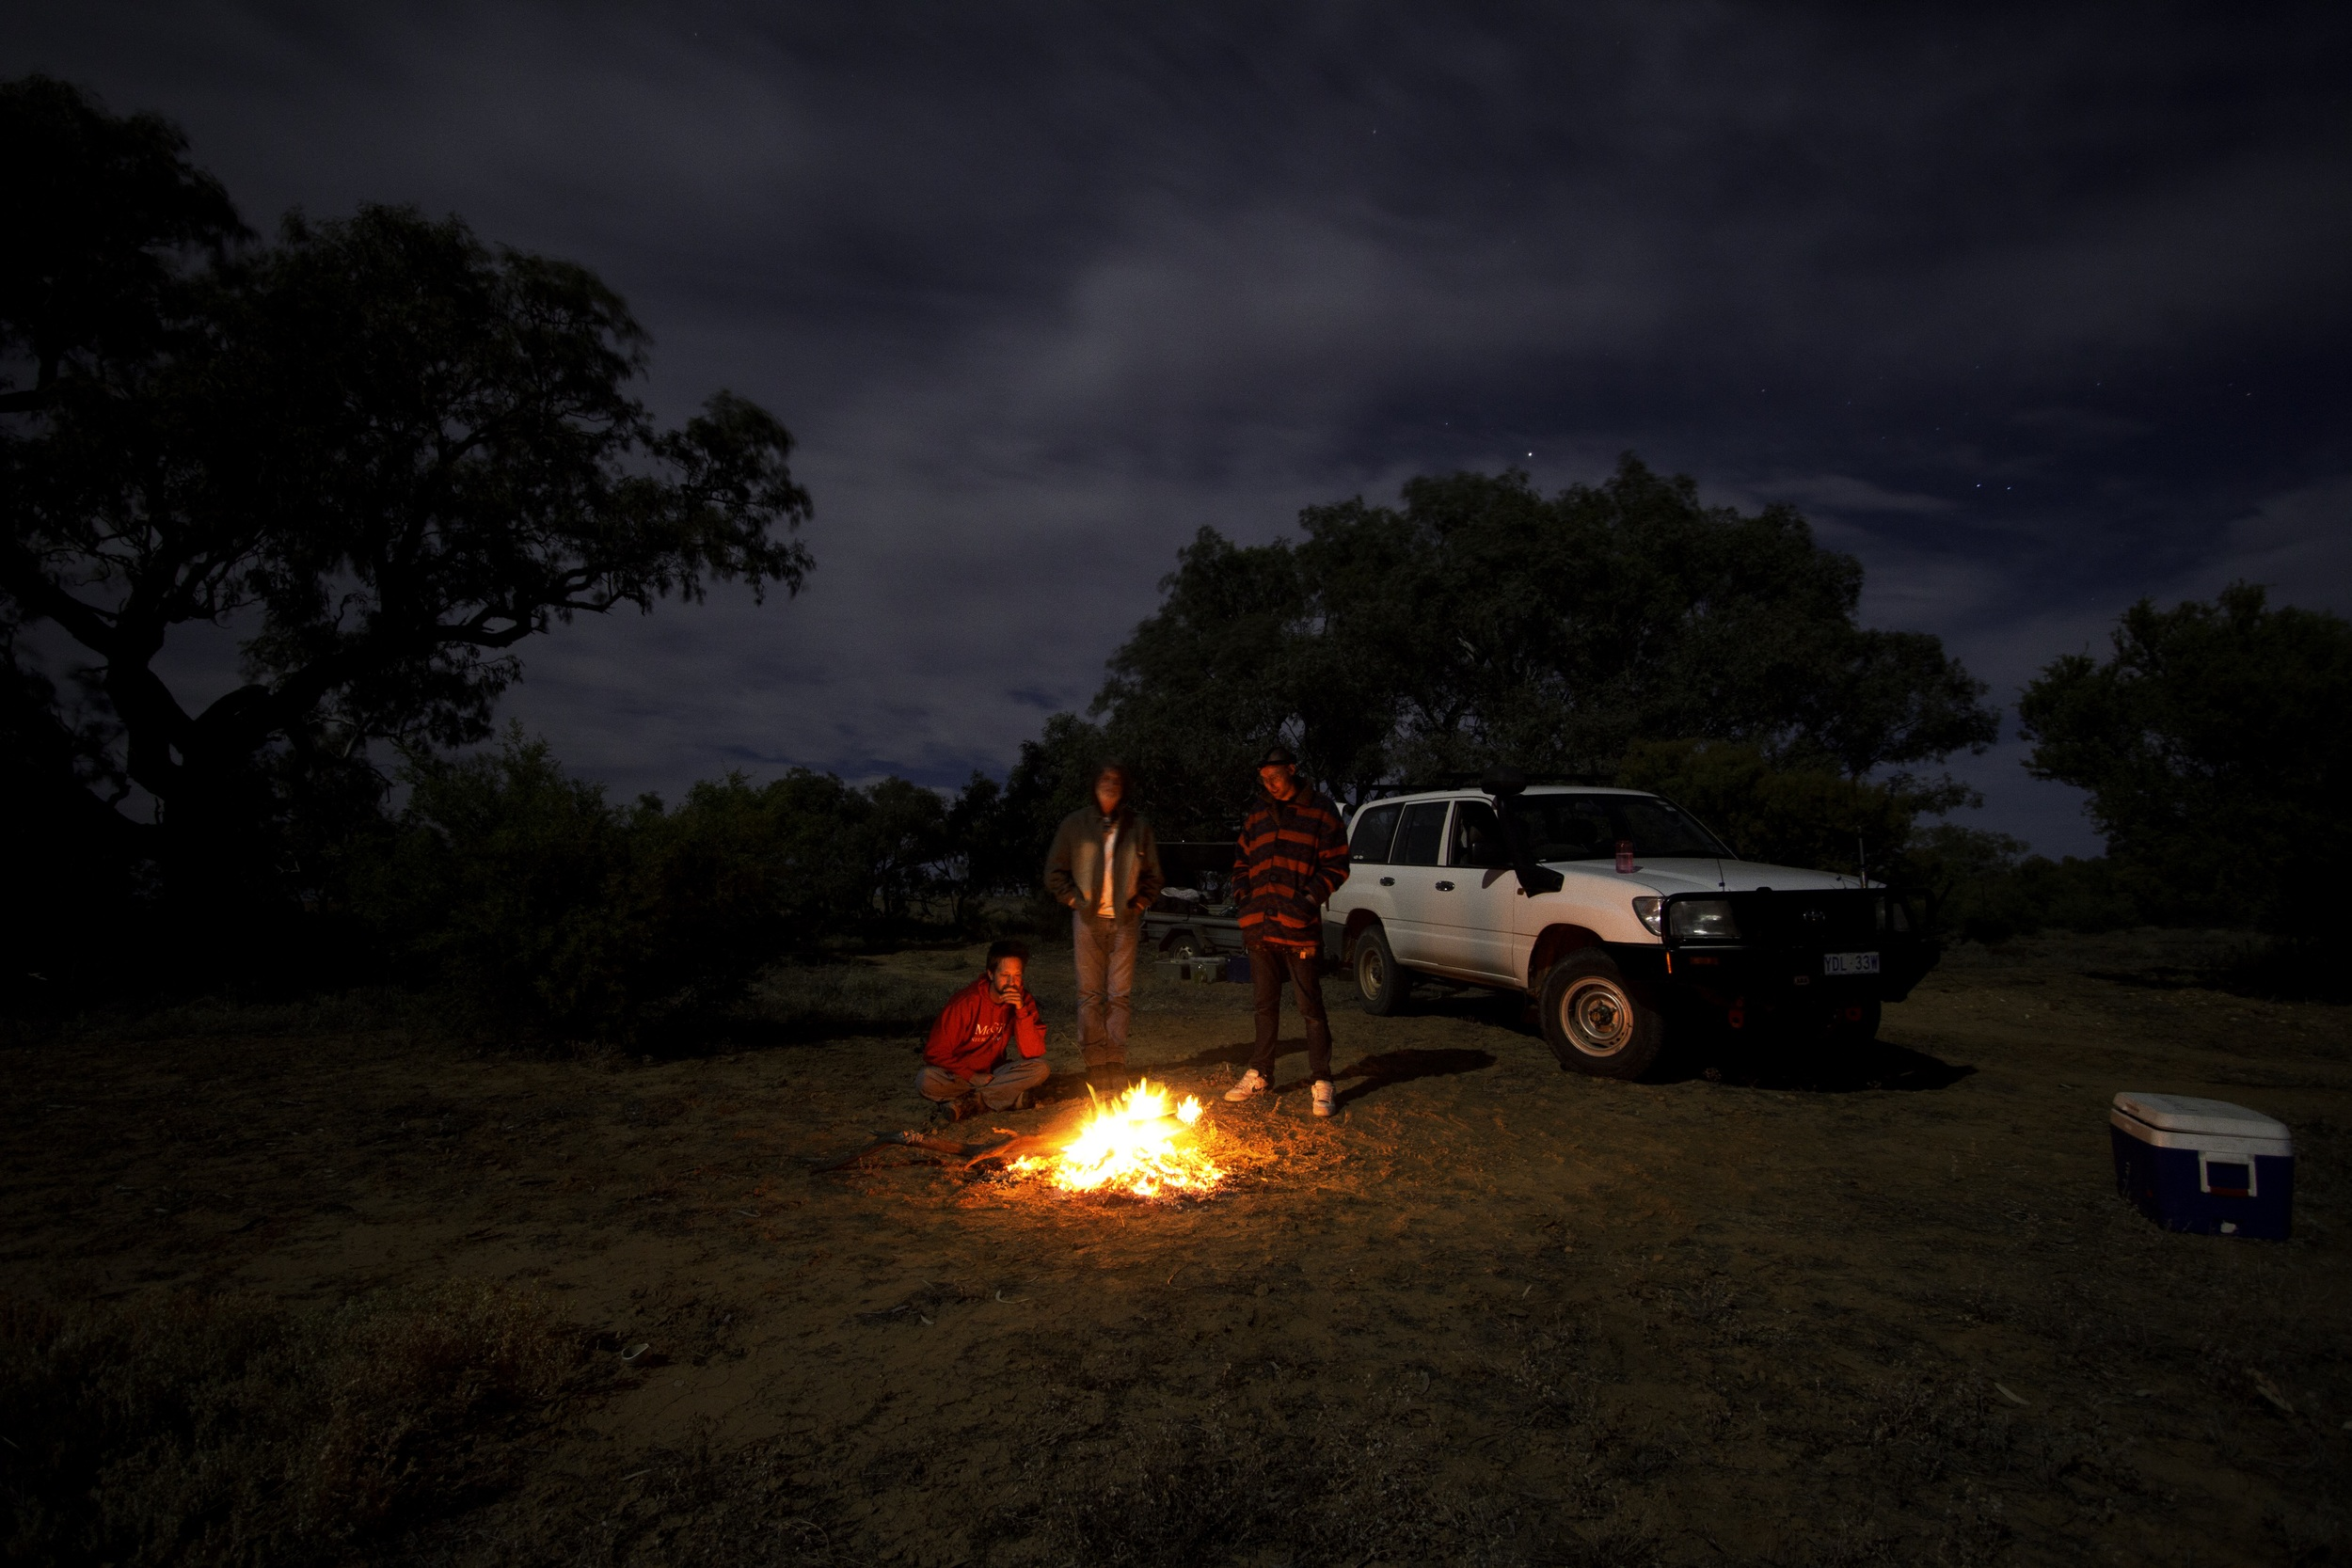 Campfire with the trailer during happier times.